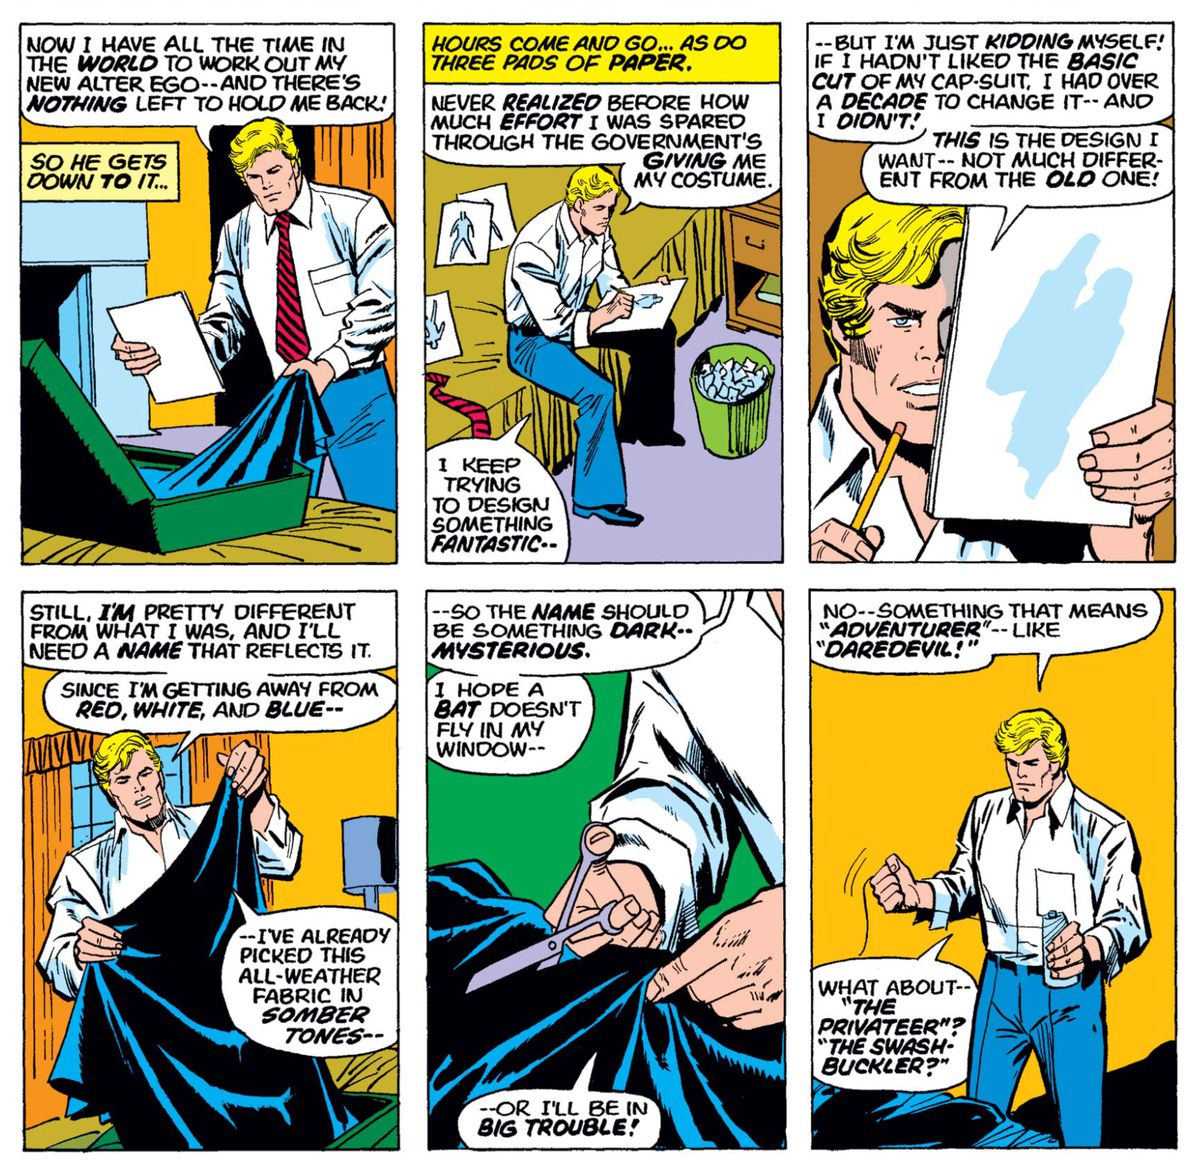 Steve Rogers sketches his new costume, and starts cutting and sewing fabric for it, in Captain America #180, Marvel Comics (1974).